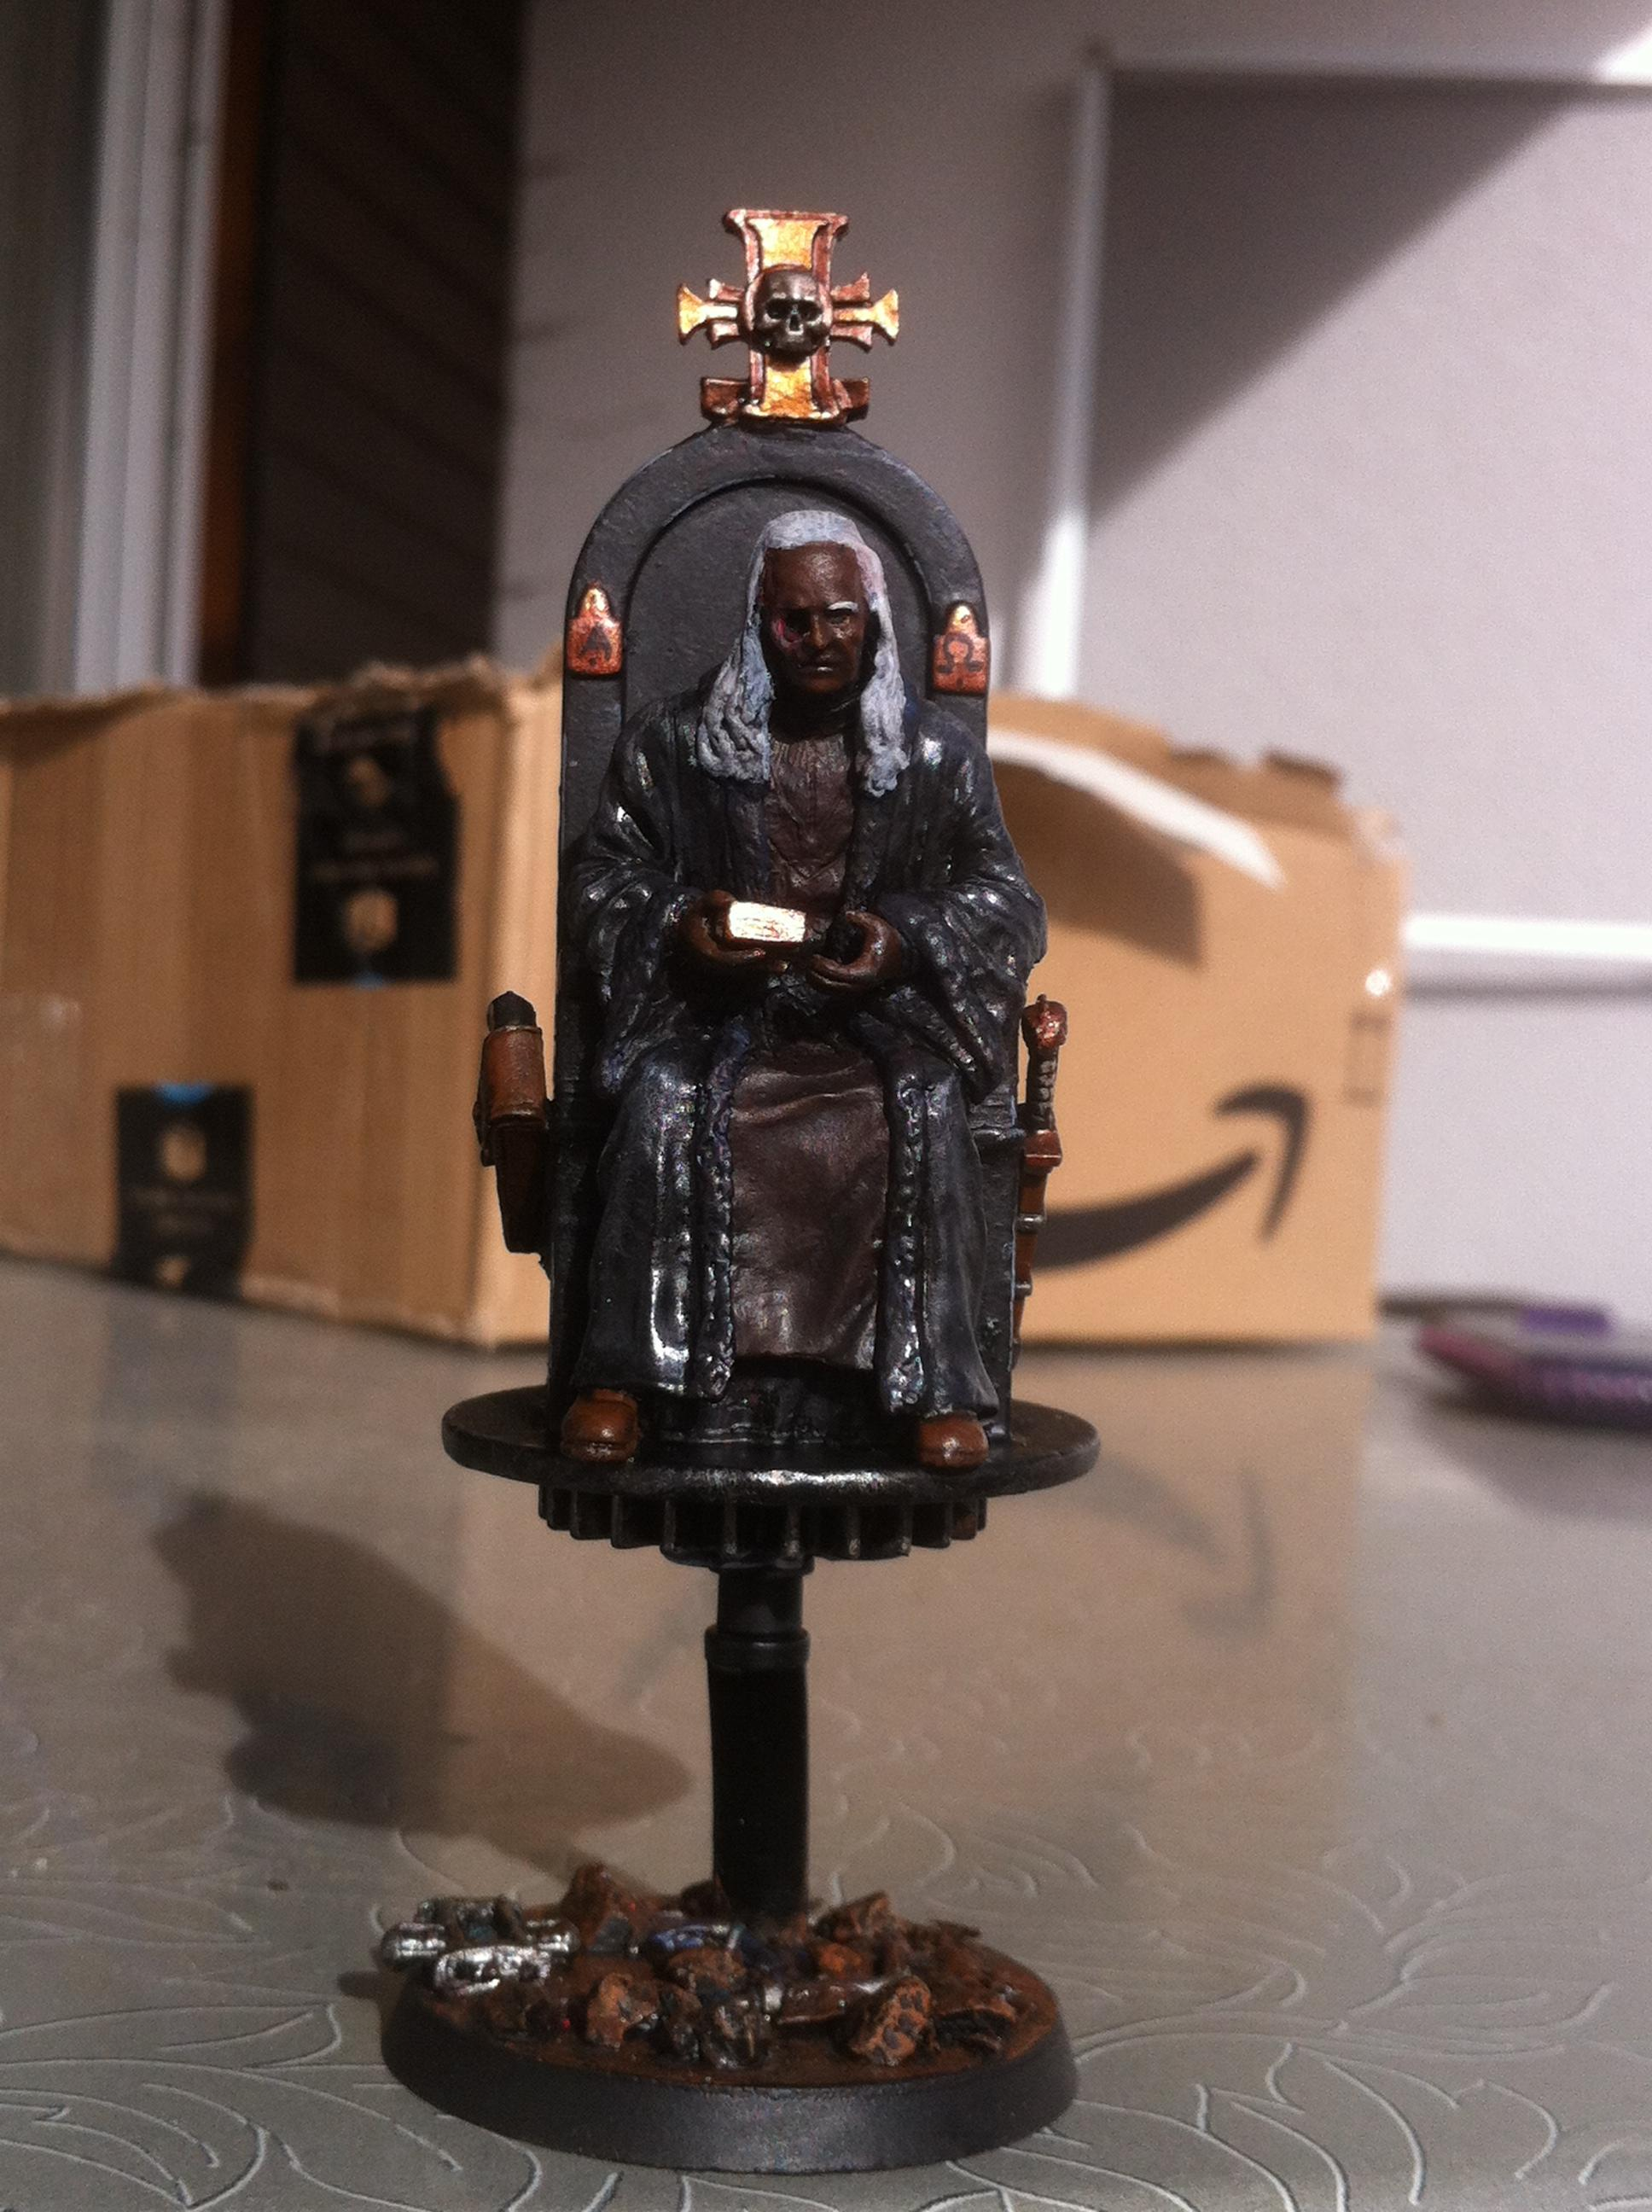 54mm, Chair, Flying, Hover, Inquisitor, Karamasov, Karamasow, Old, Scratch